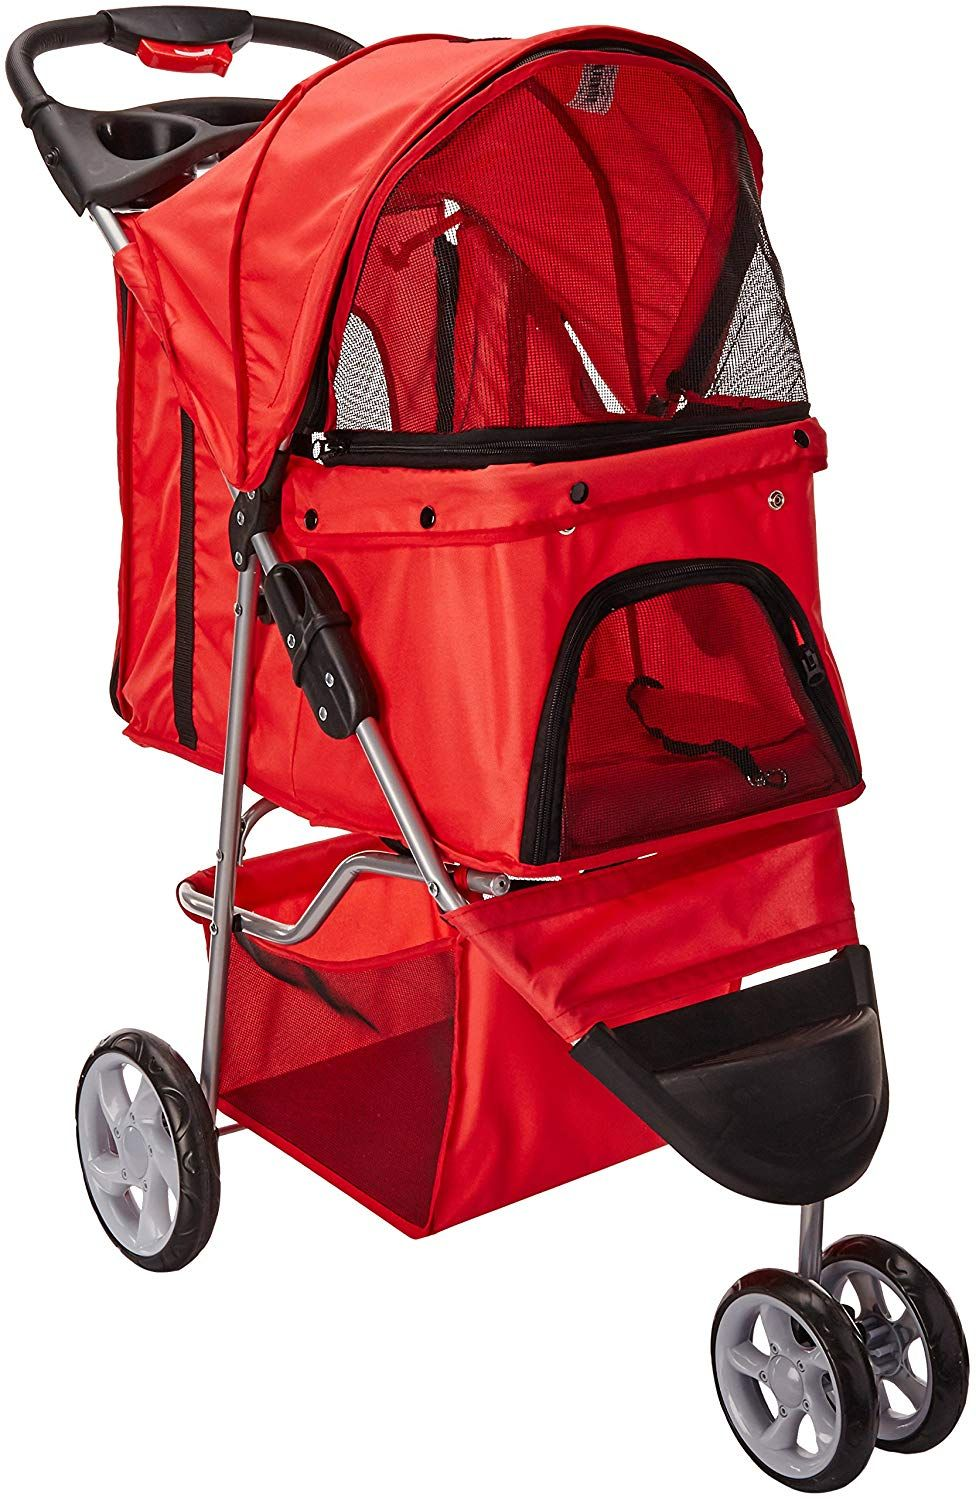 Pin on Dog Carriers and Travel Products